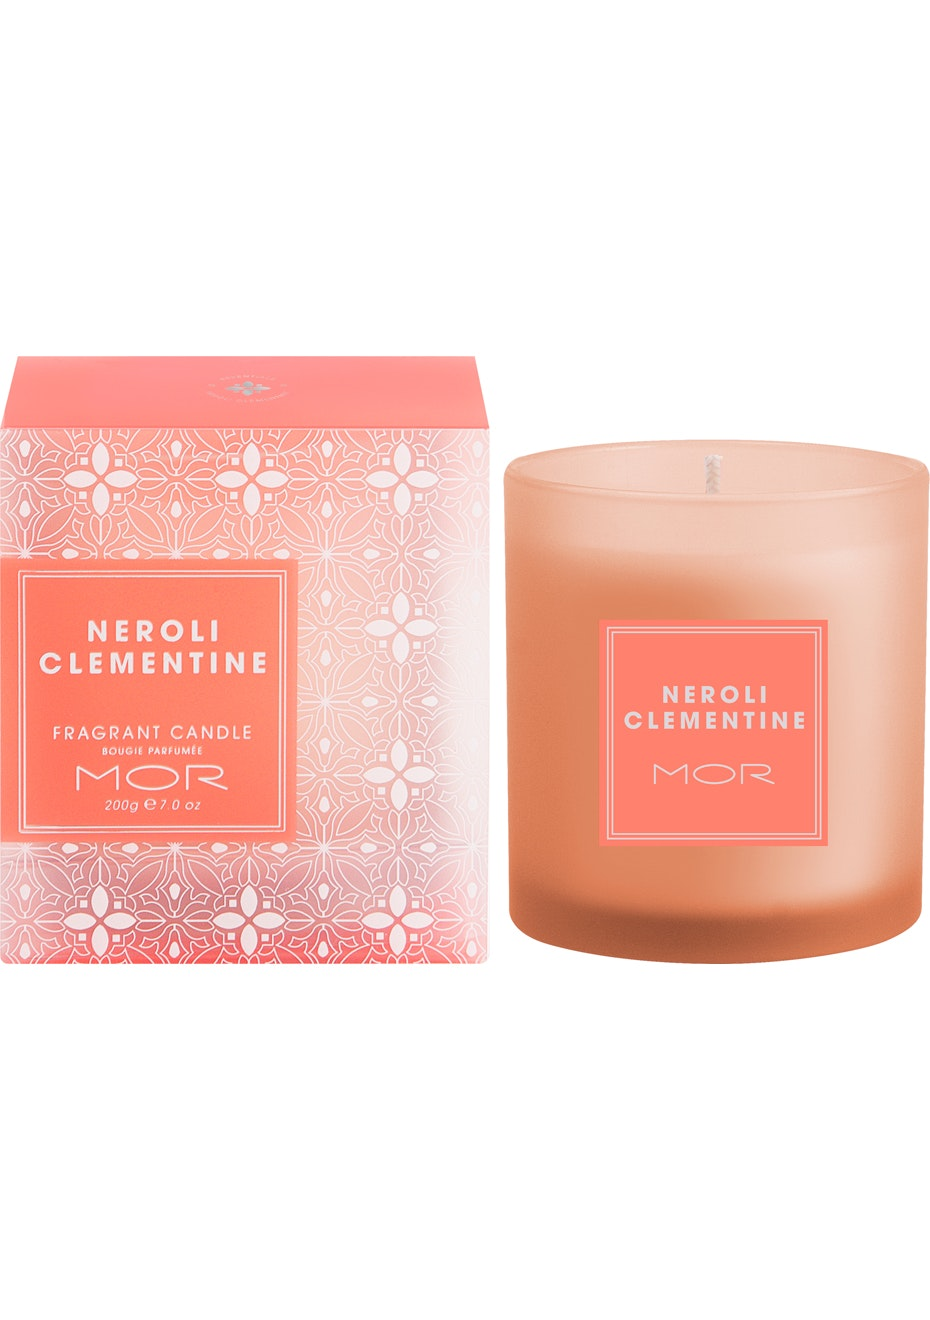 MOR - Fragrant Candle 200G Neroli Clementine